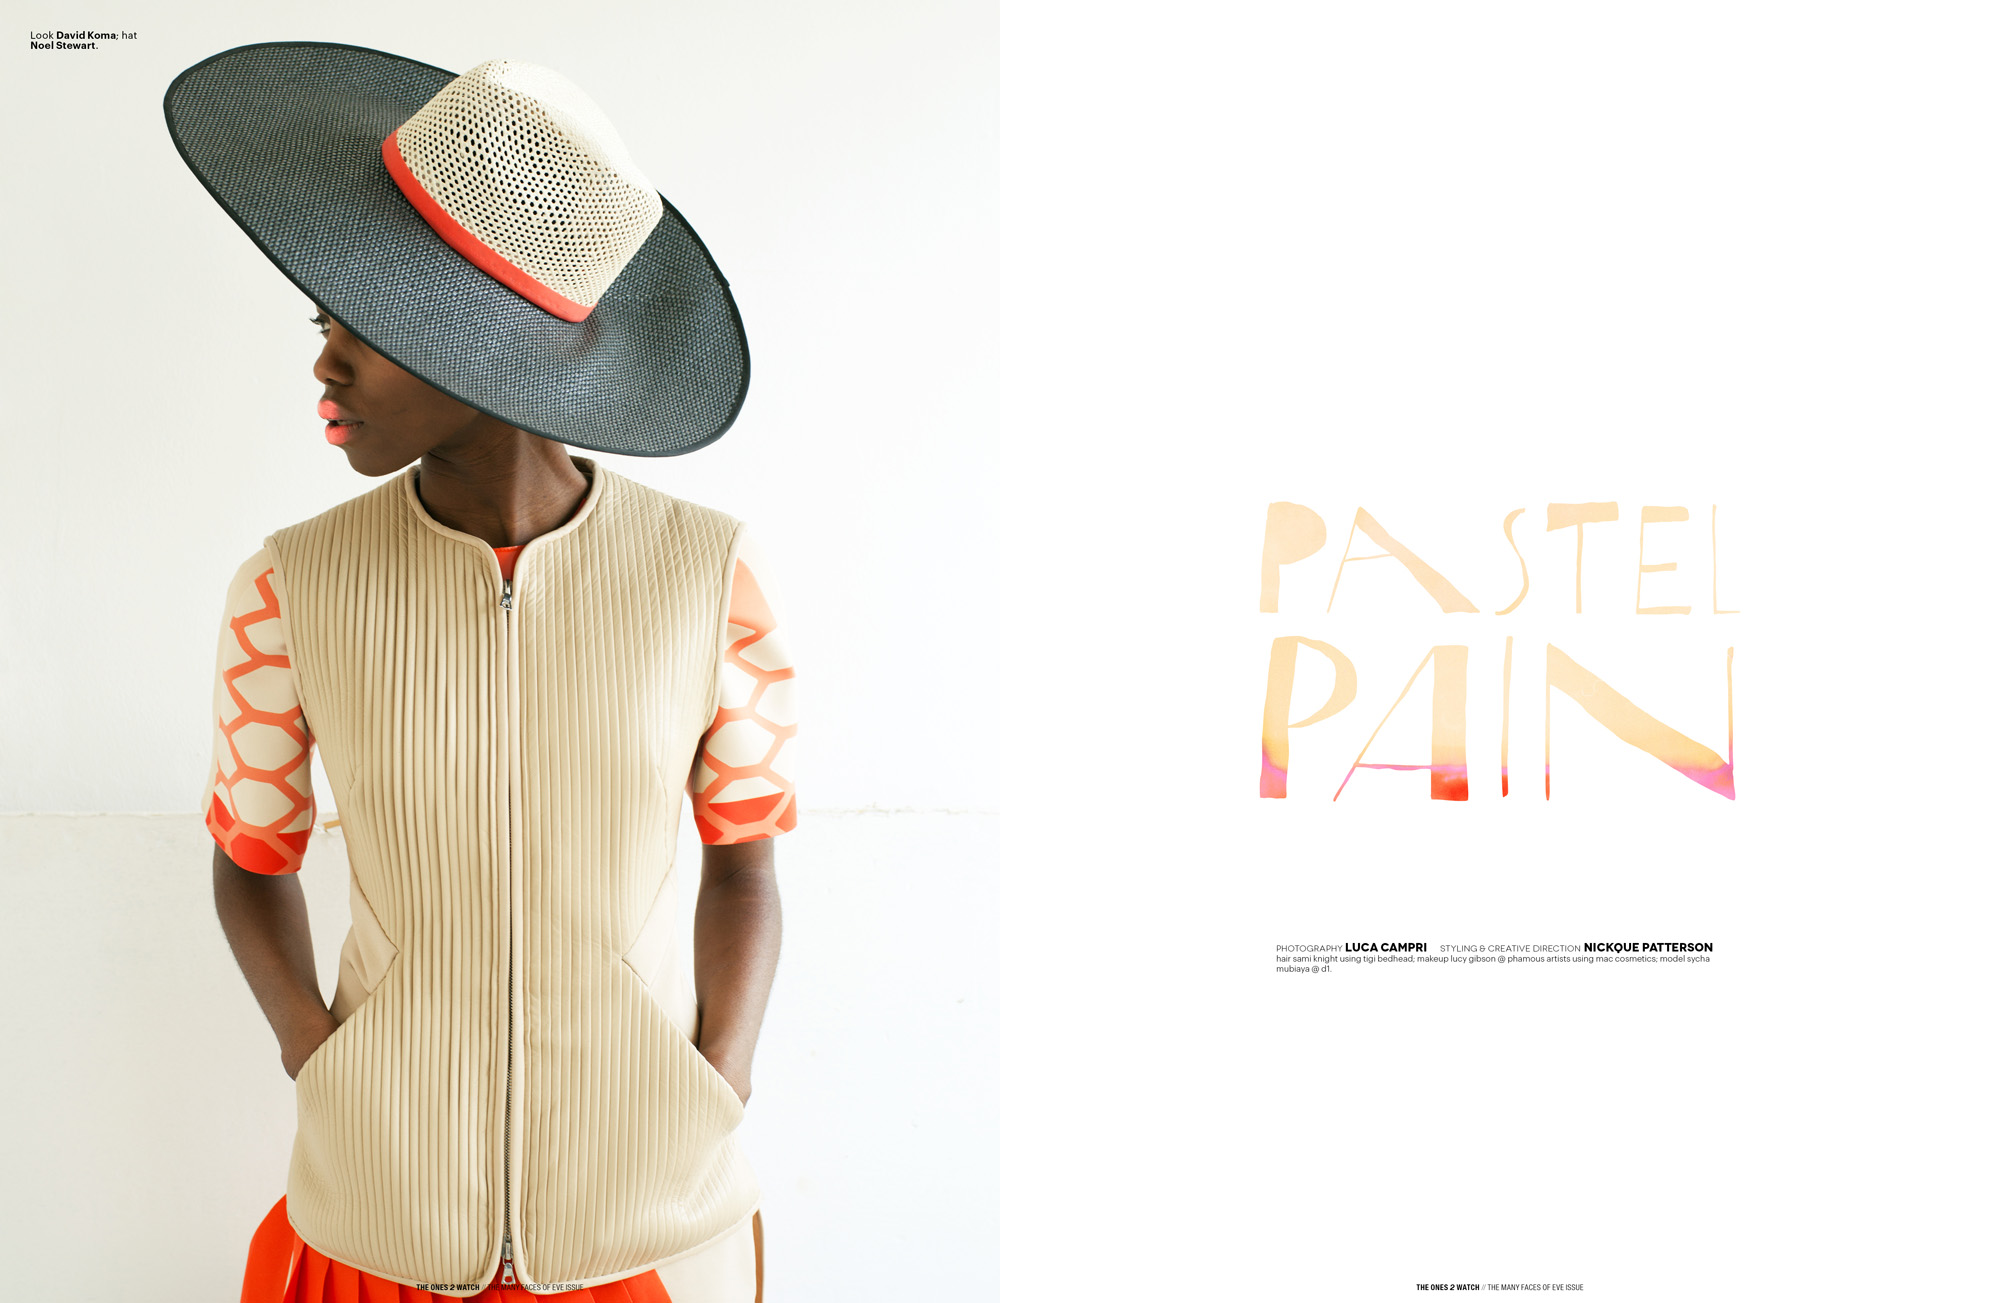 Look David Koma; hat Noel Stewart.